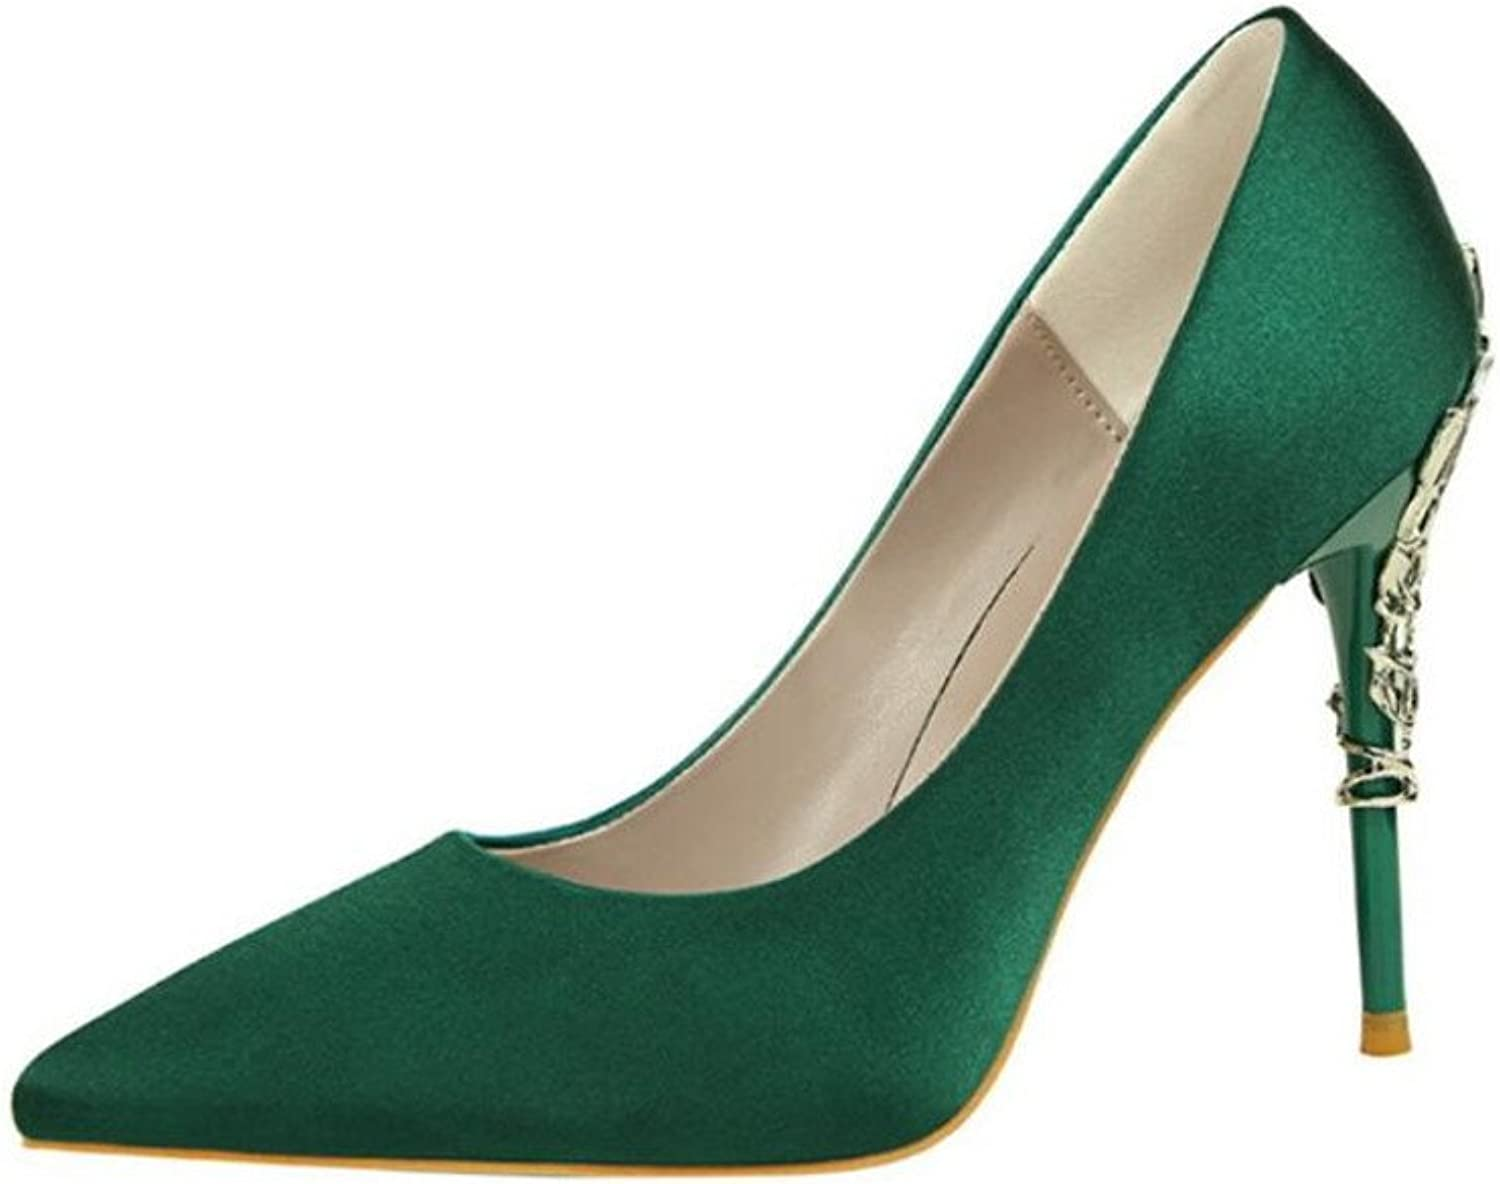 Pointed Toe Low Mid Kitten Heels Dress Court shoes Wedding Office shoes Satin Upper for Women Ladies Candy color Sandals,Green,EU40